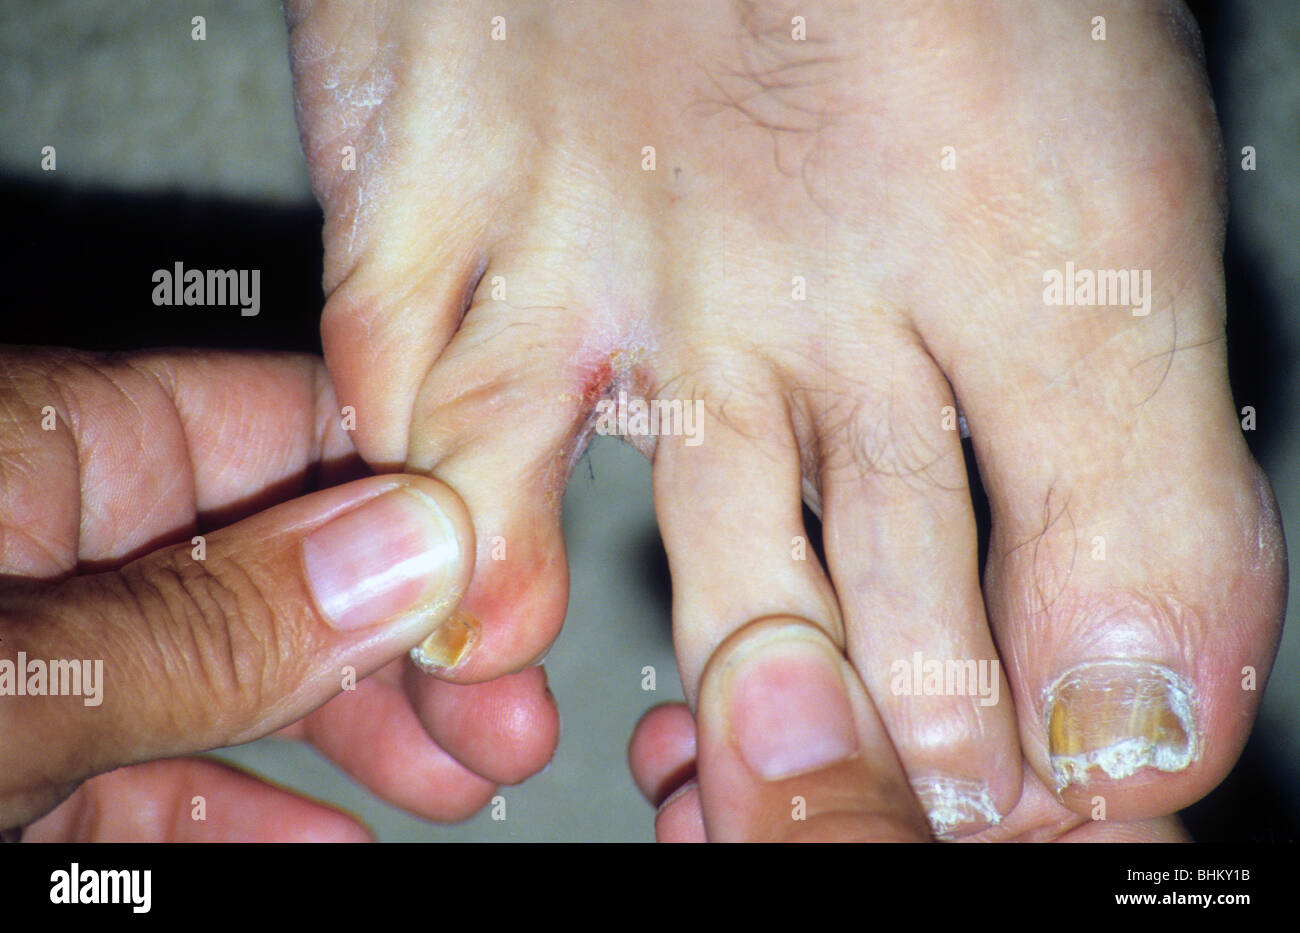 Athletes Foot Stock Photos & Athletes Foot Stock Images - Alamy